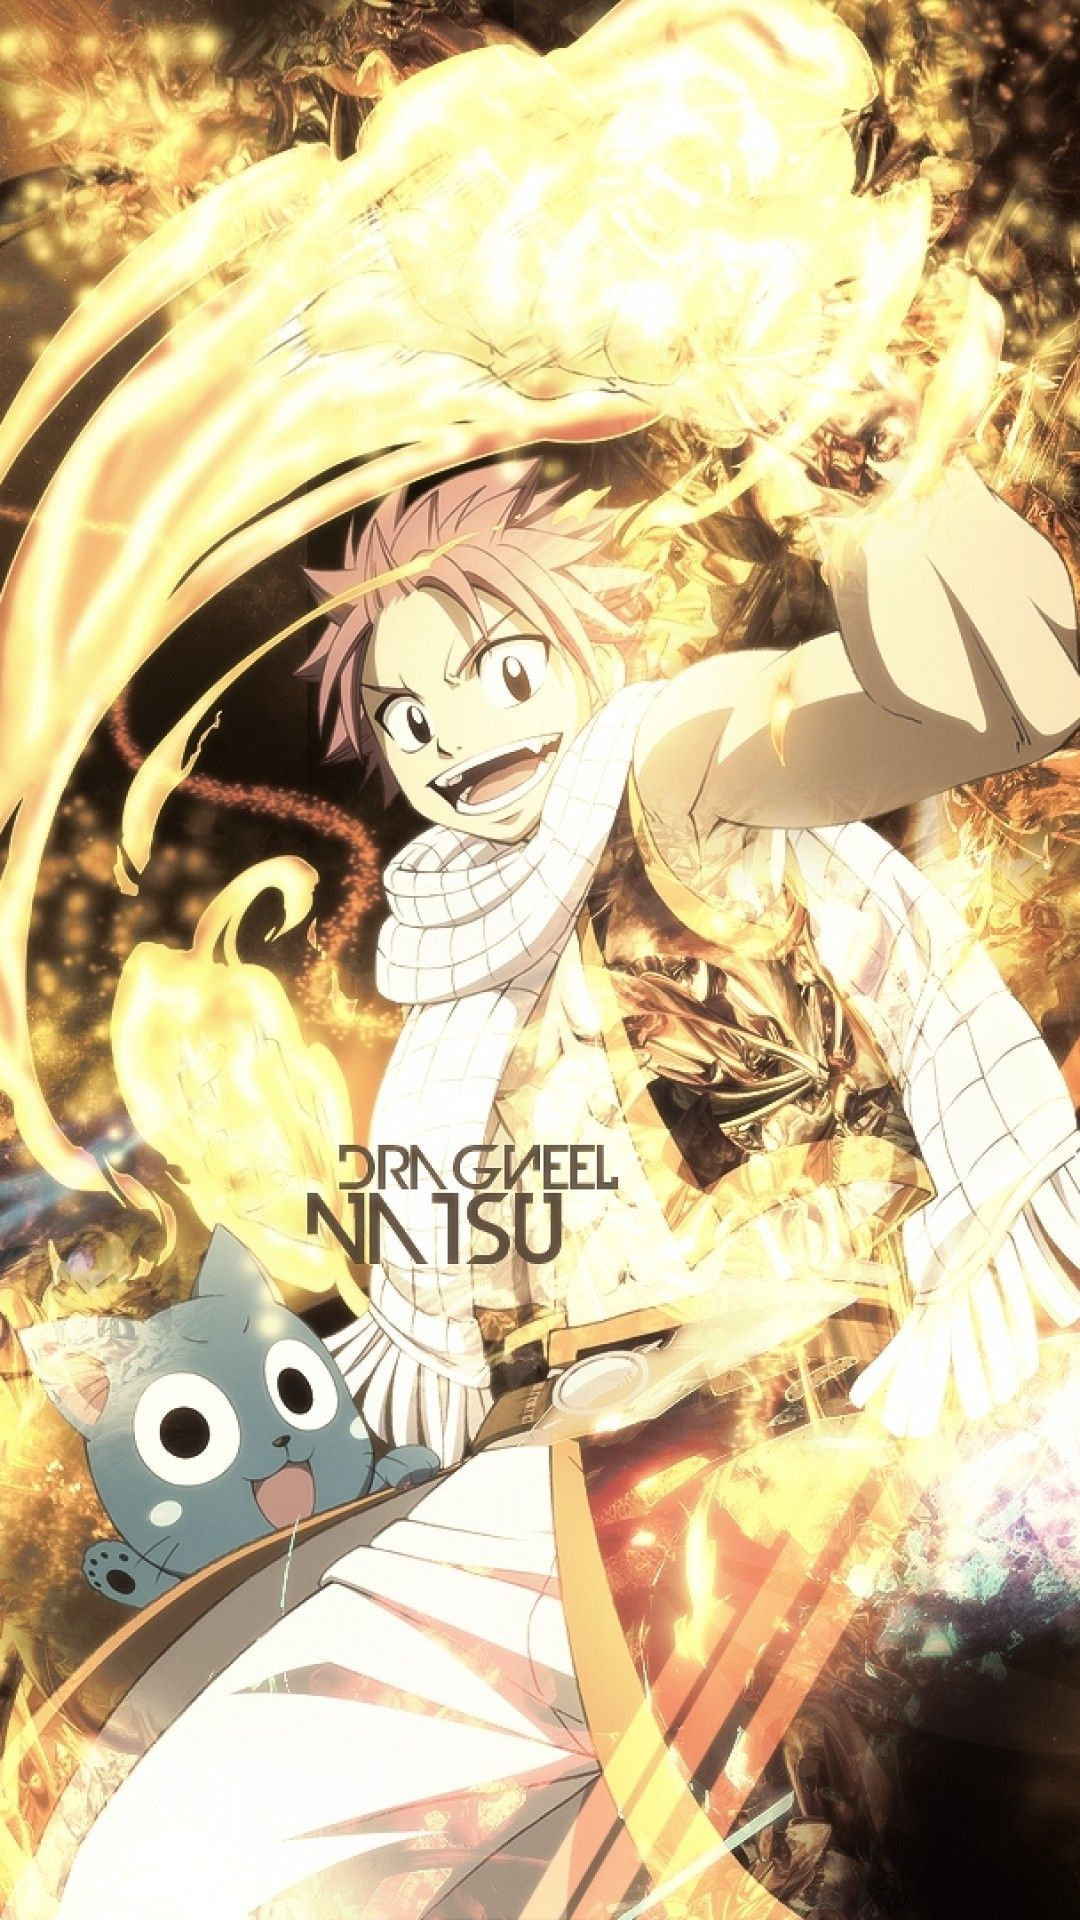 Natsu Fairy Tail Wallpaper Download em 2020 Fairy tail